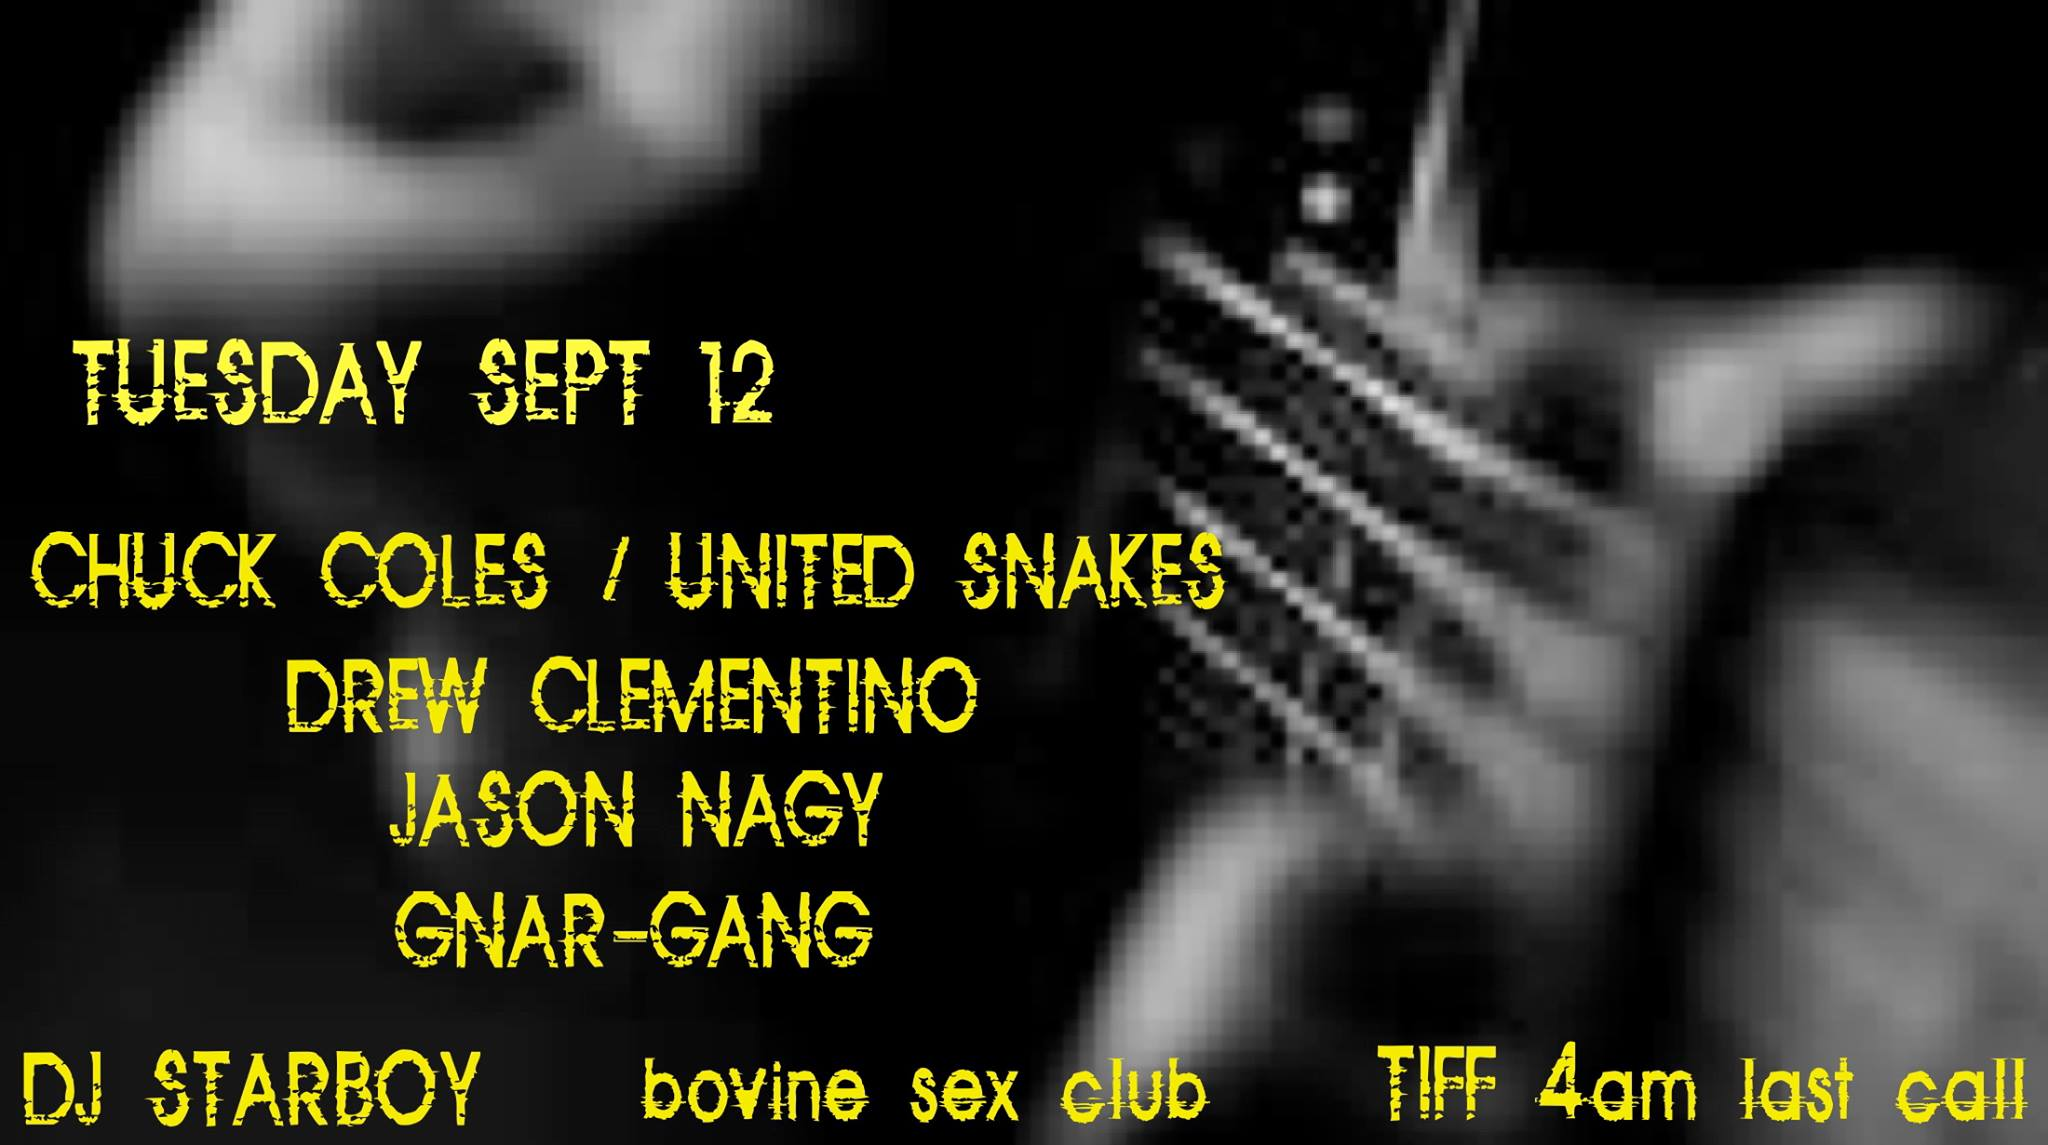 Chuck Coles & United Snakes **** 4am Last Call